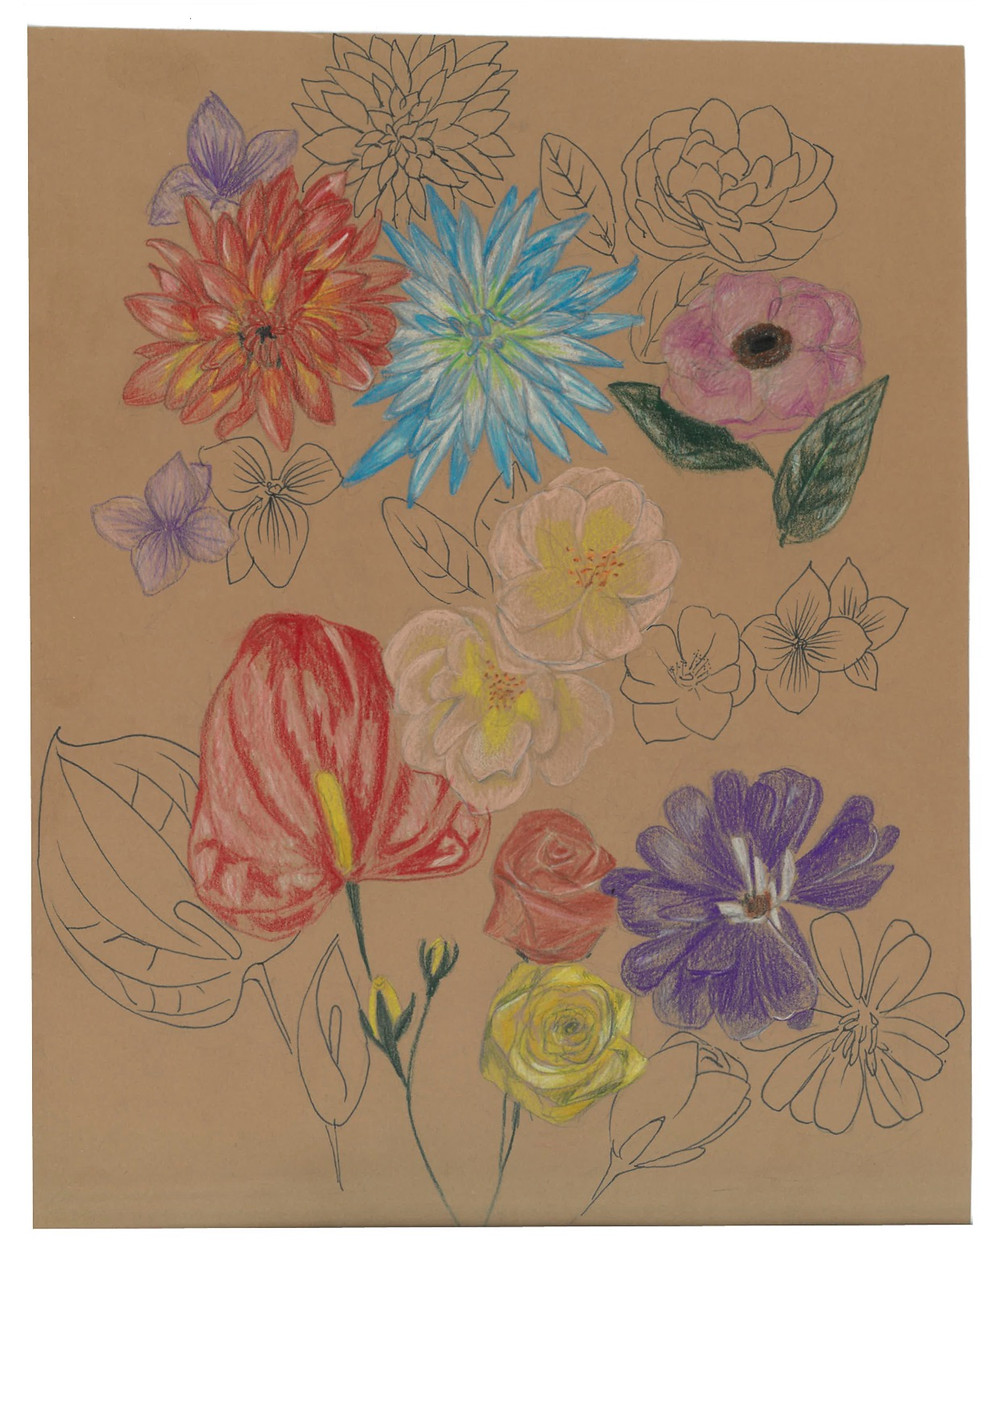 Bloom where you are planted. An illustration of flowers using pencil crayon.